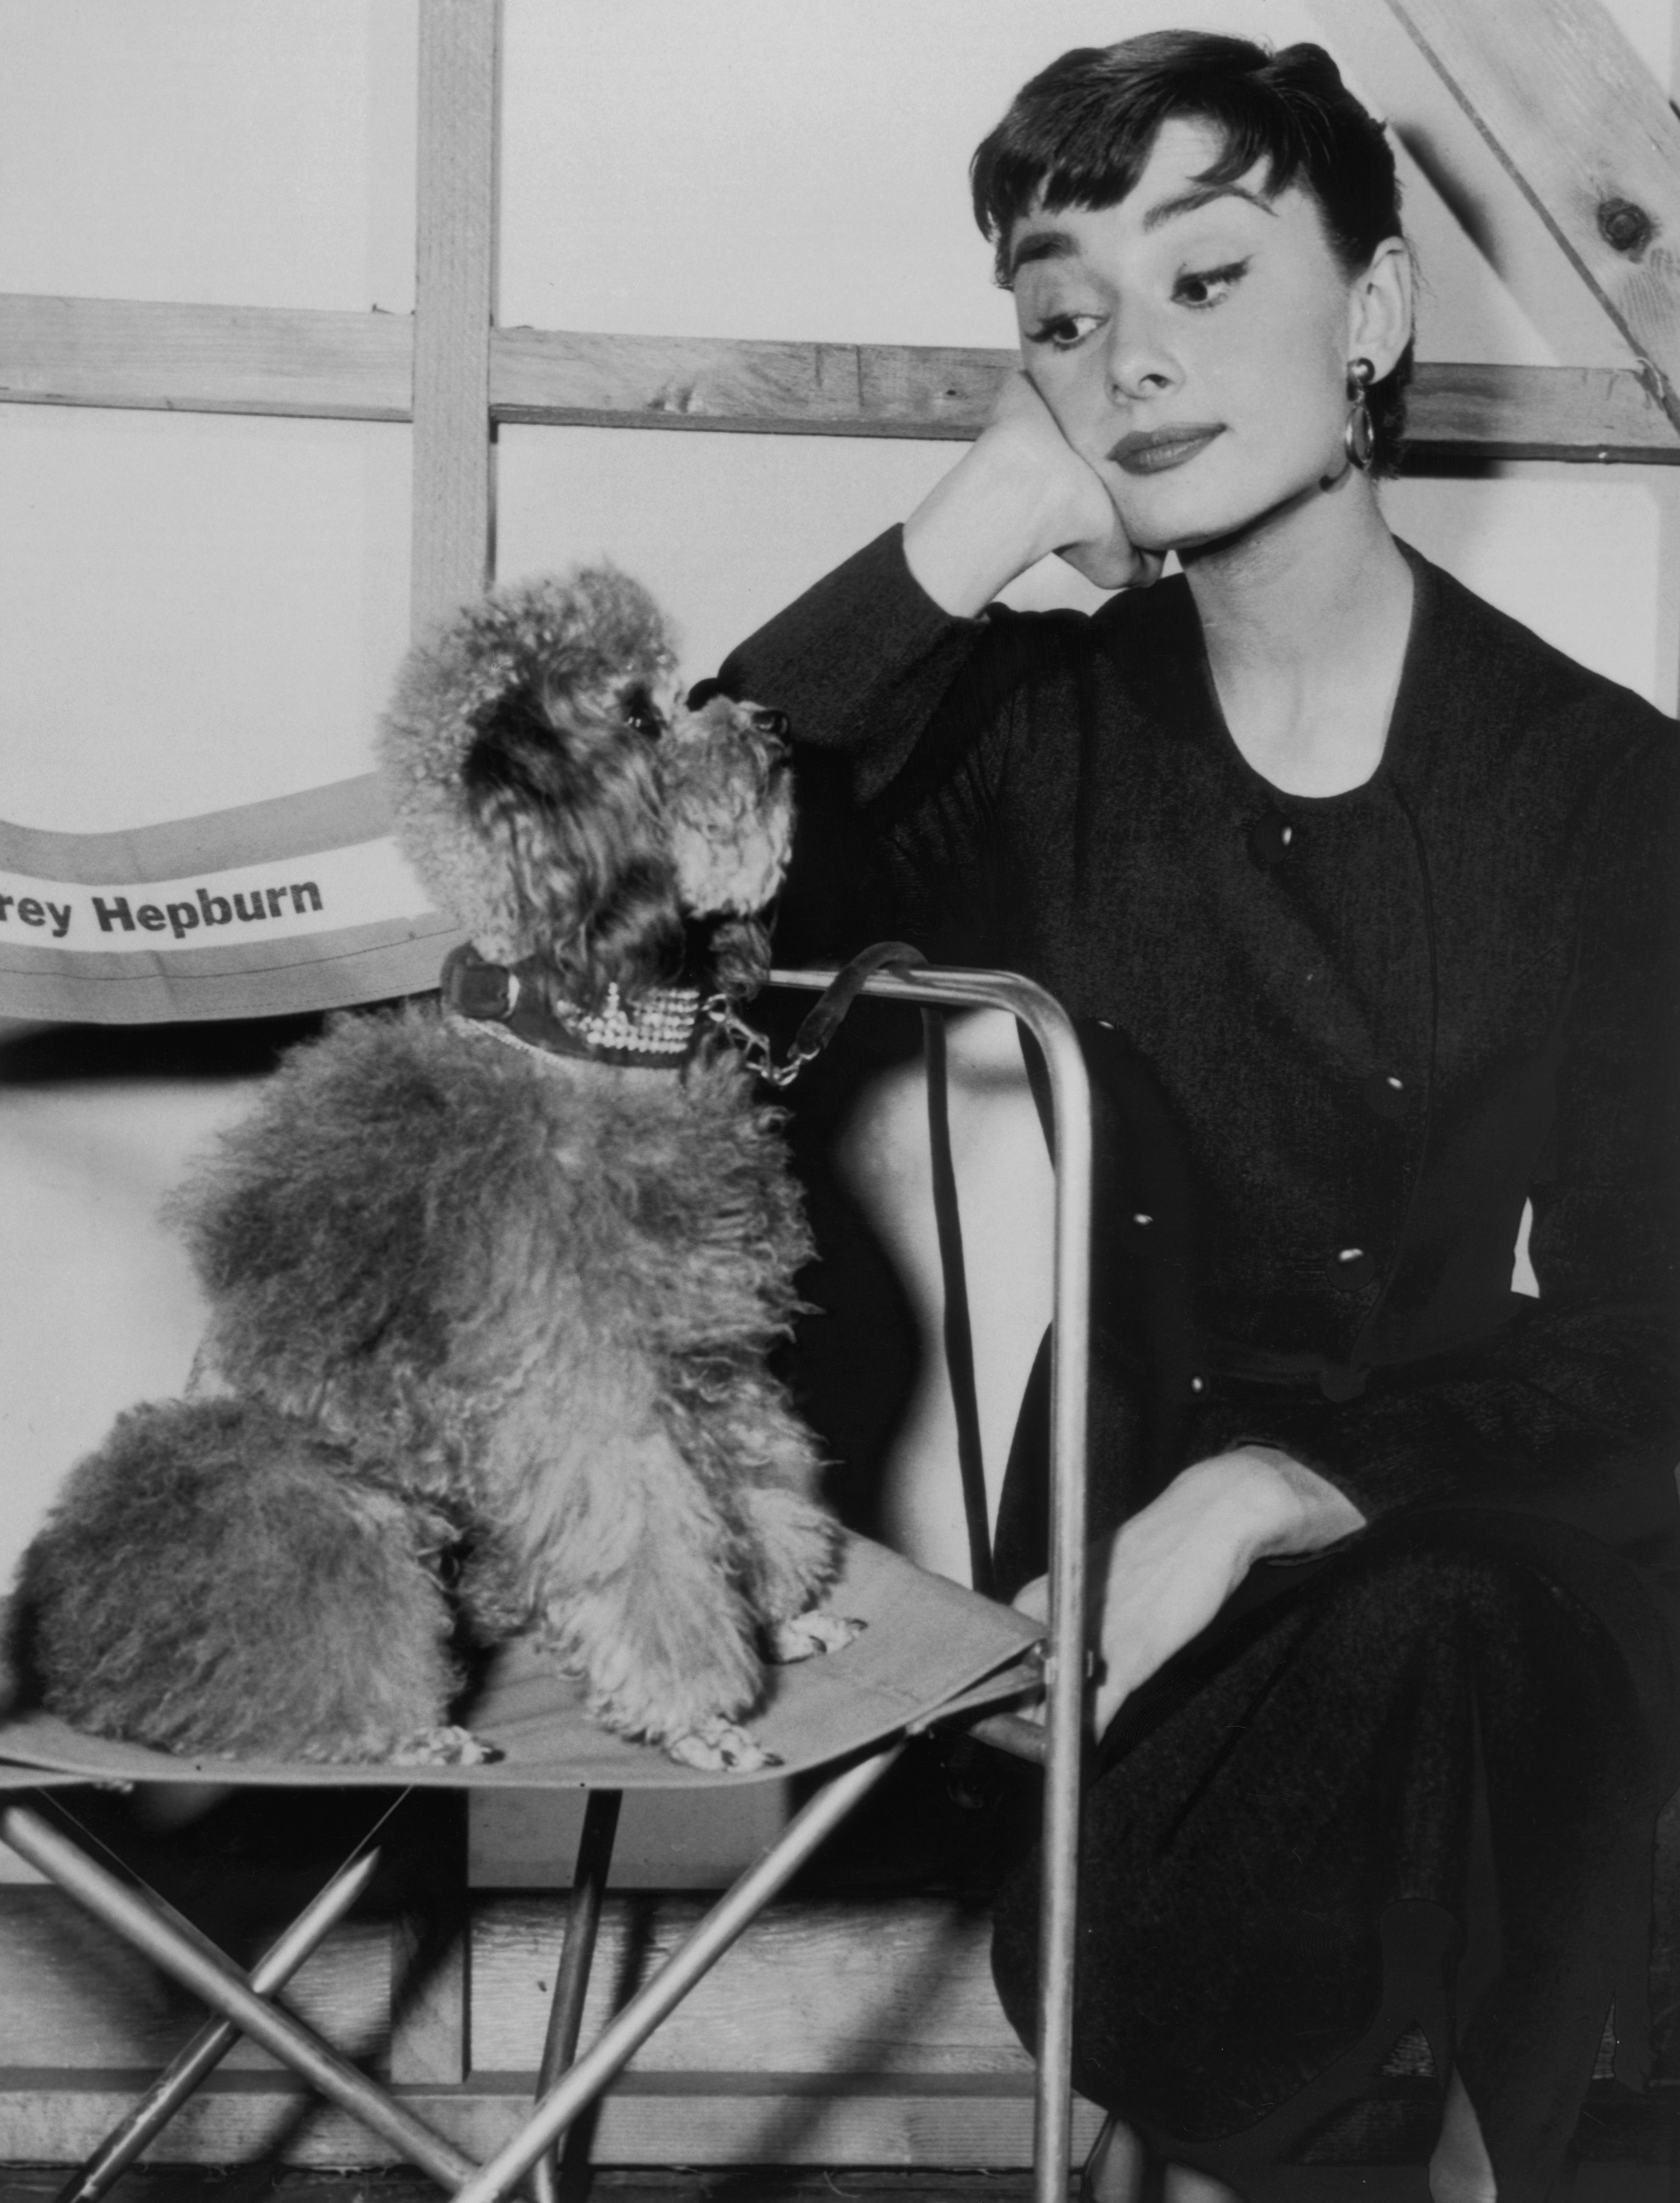 Audrey Hepburn (1929 - 1993) on a film set with her pet poodle, circa 1960. | Source: Getty Images